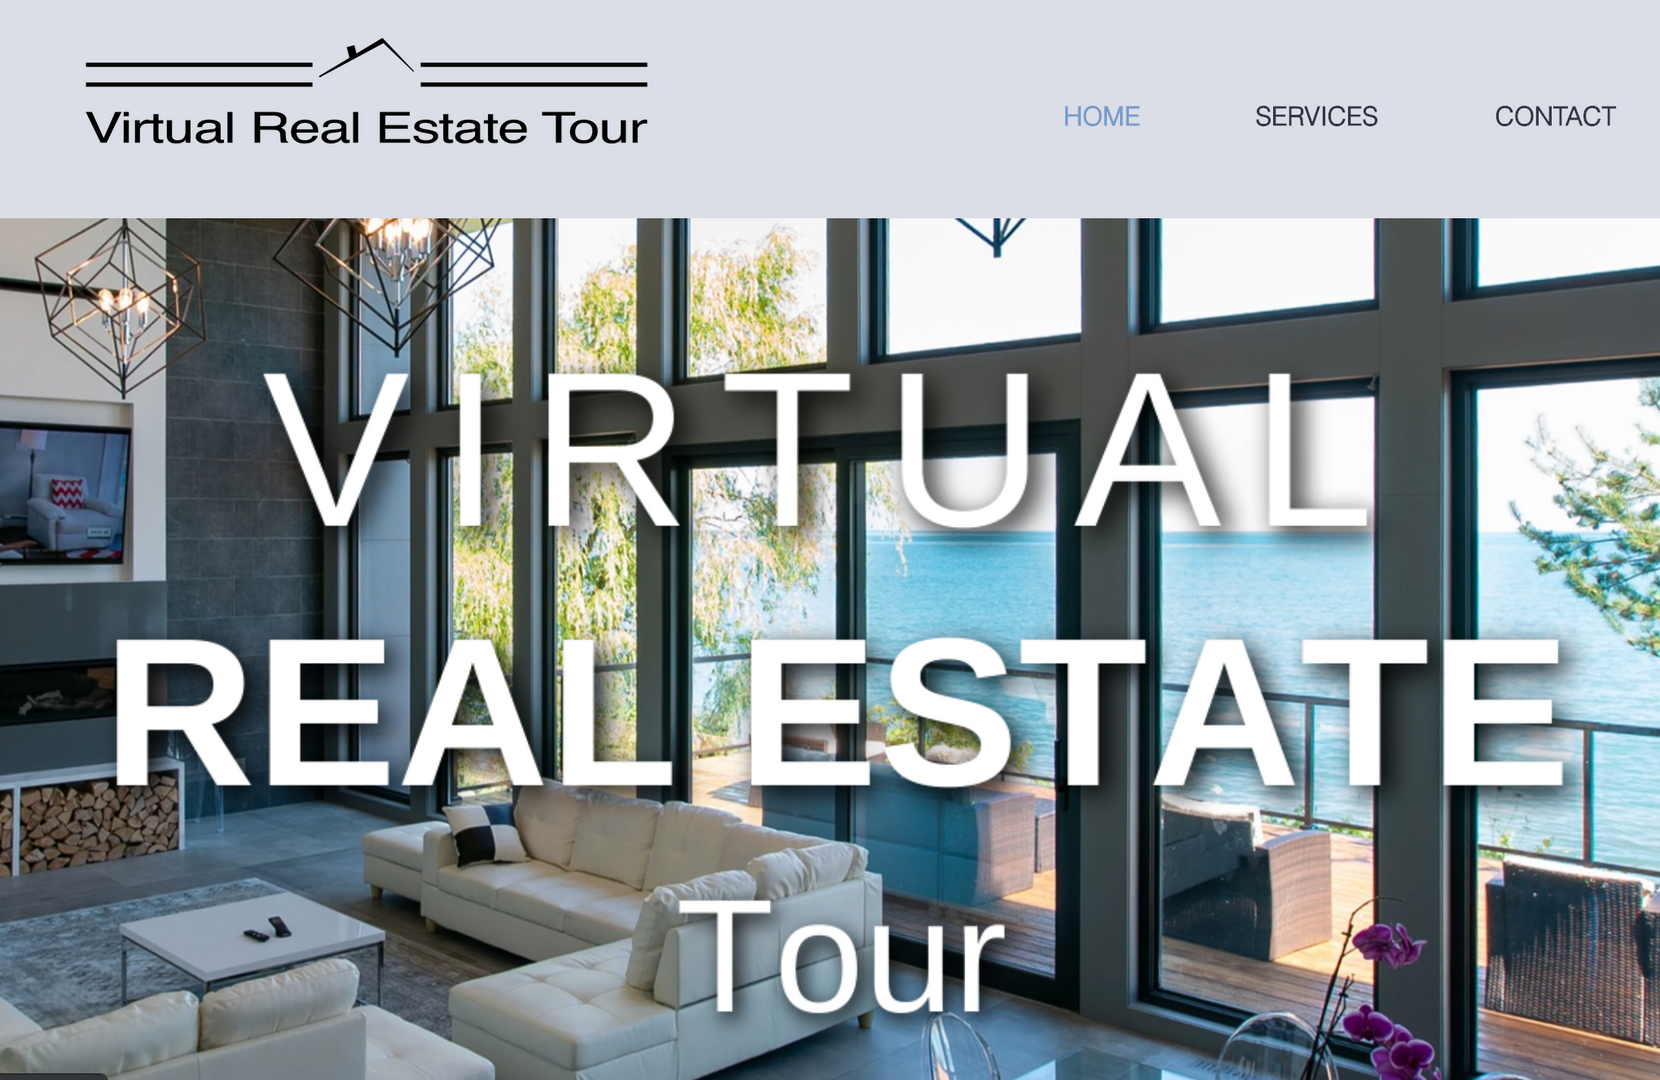 Homepage for Virtual Real Estate Tour